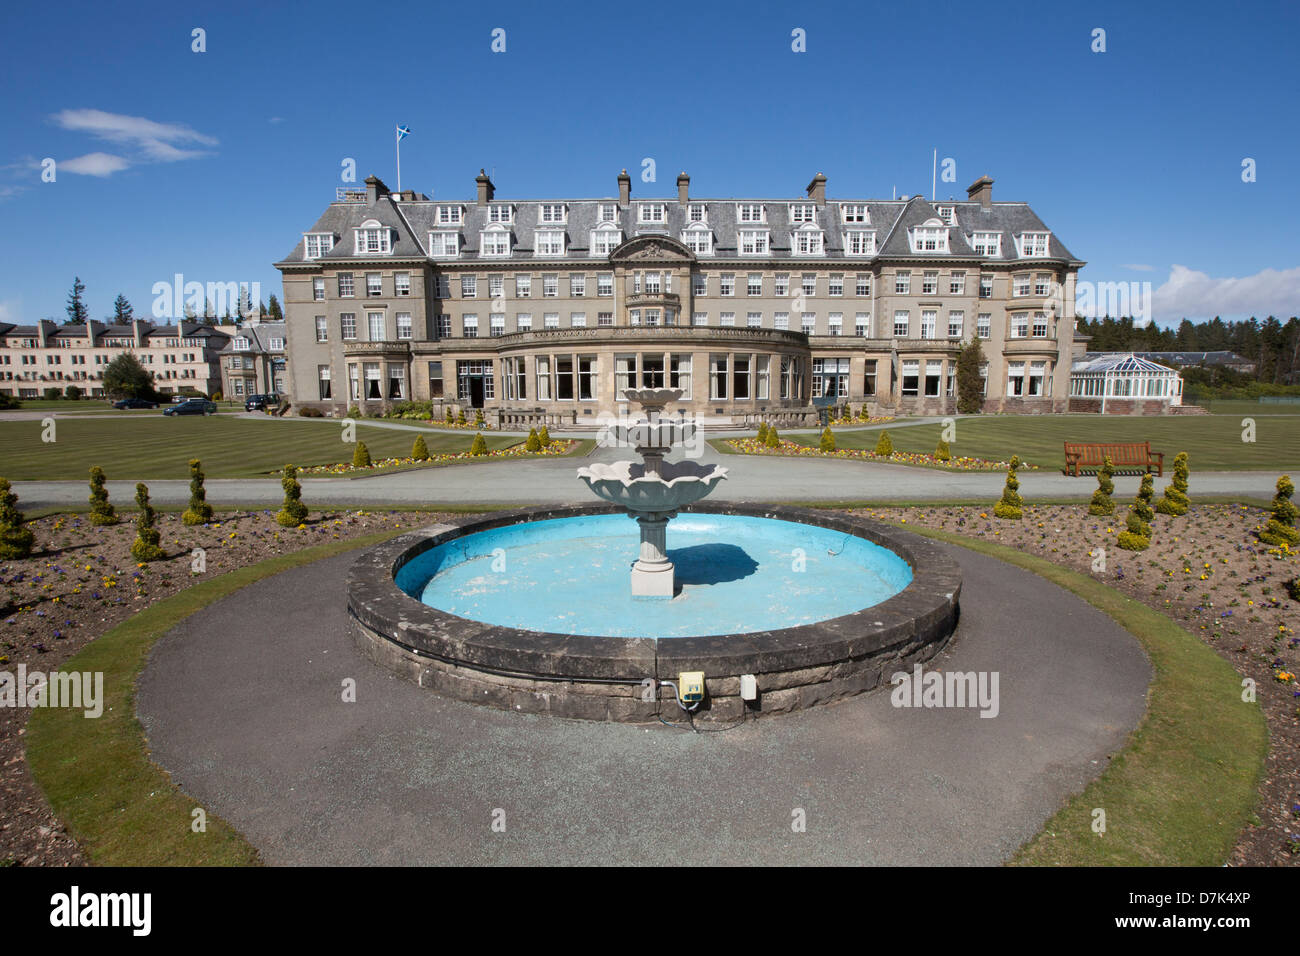 Gleneagles Hotel Stock Photos Gleneagles Hotel Stock Images Alamy